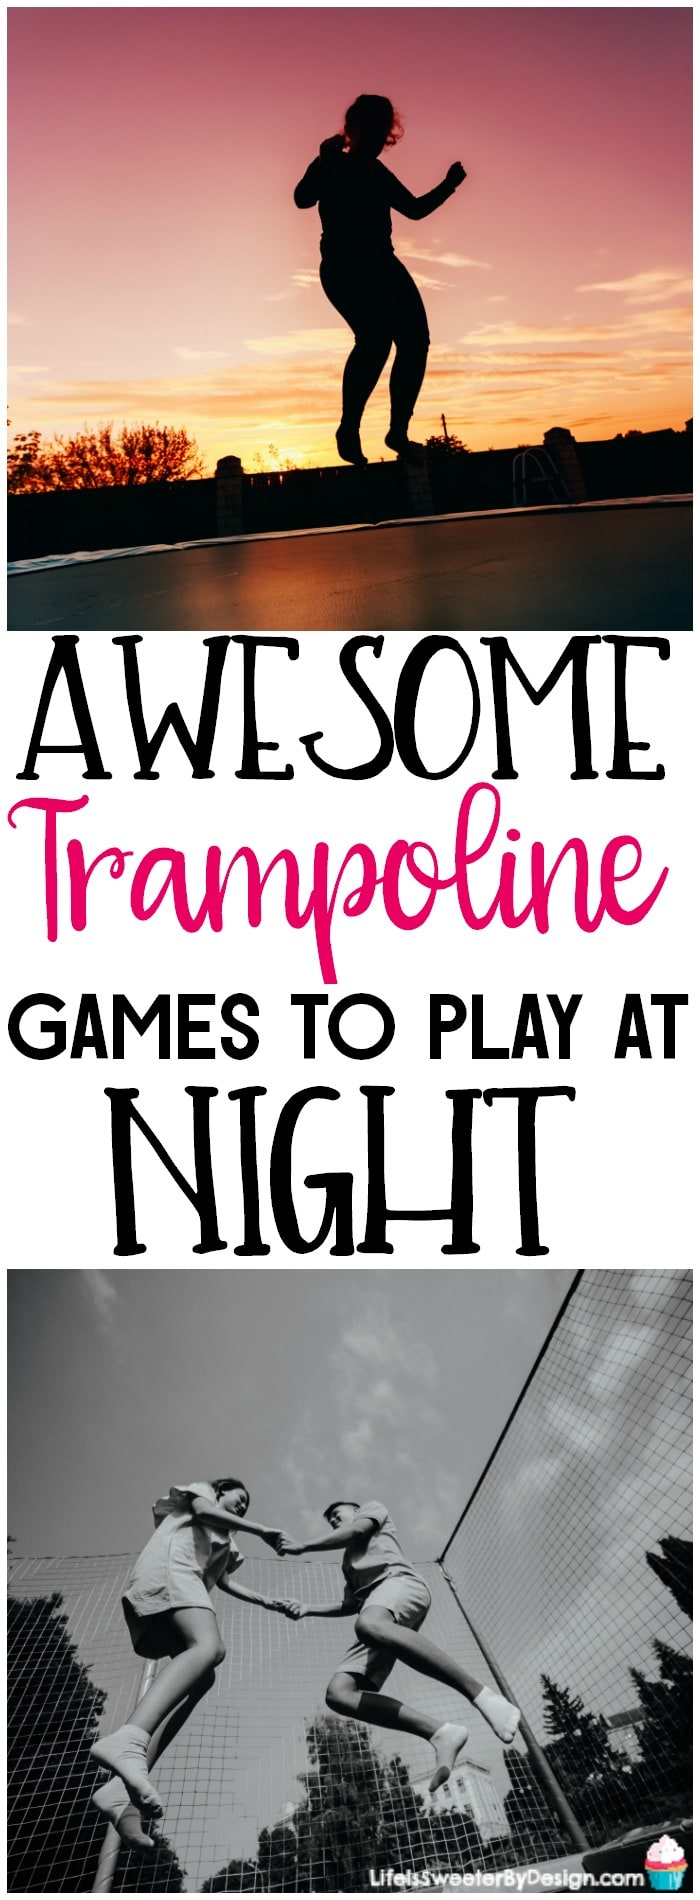 Trampoline games to play at night are so much fun! Try these trampoline games in the dark for some outdoor family fun.